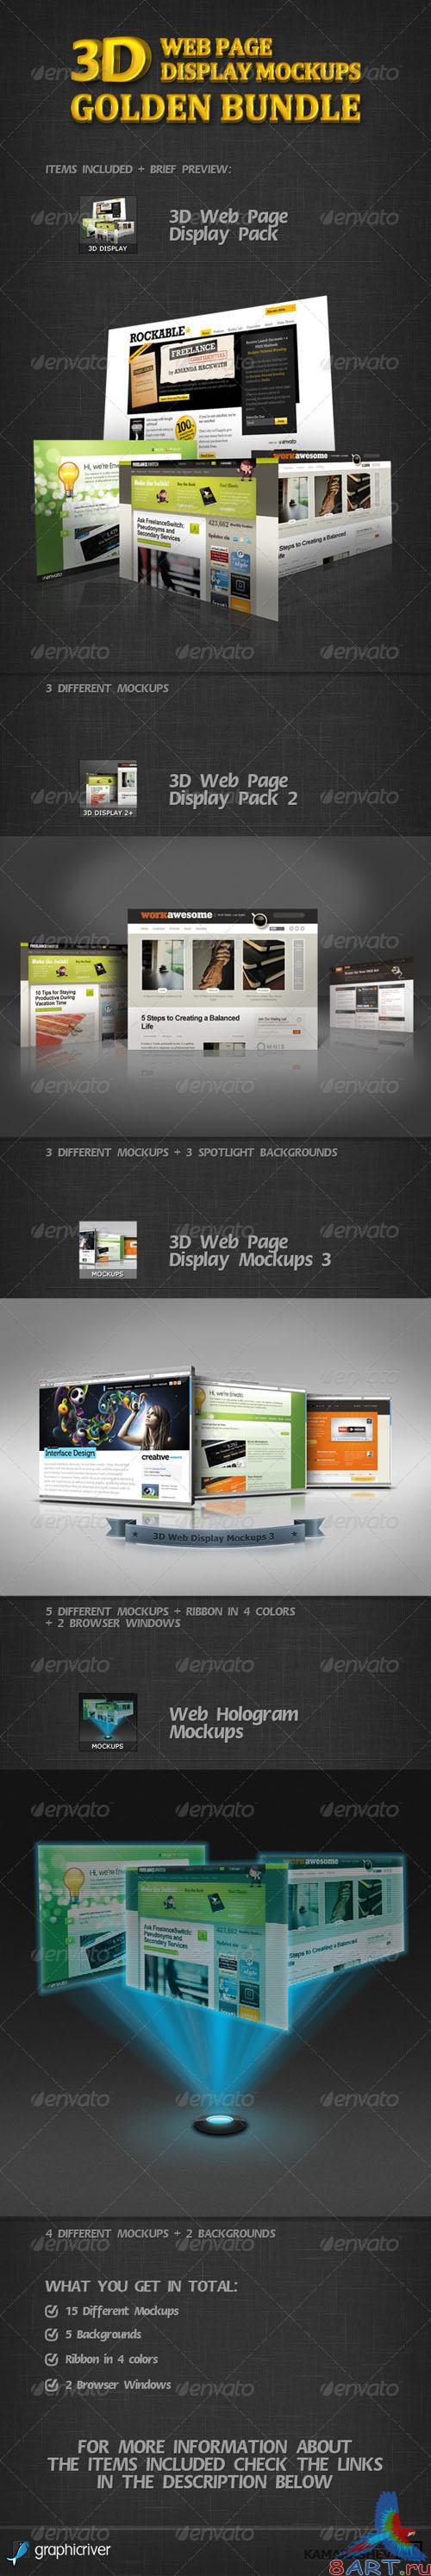 GraphicRiver - 3D Web Page Display Mockups Golden Bundle 2557003